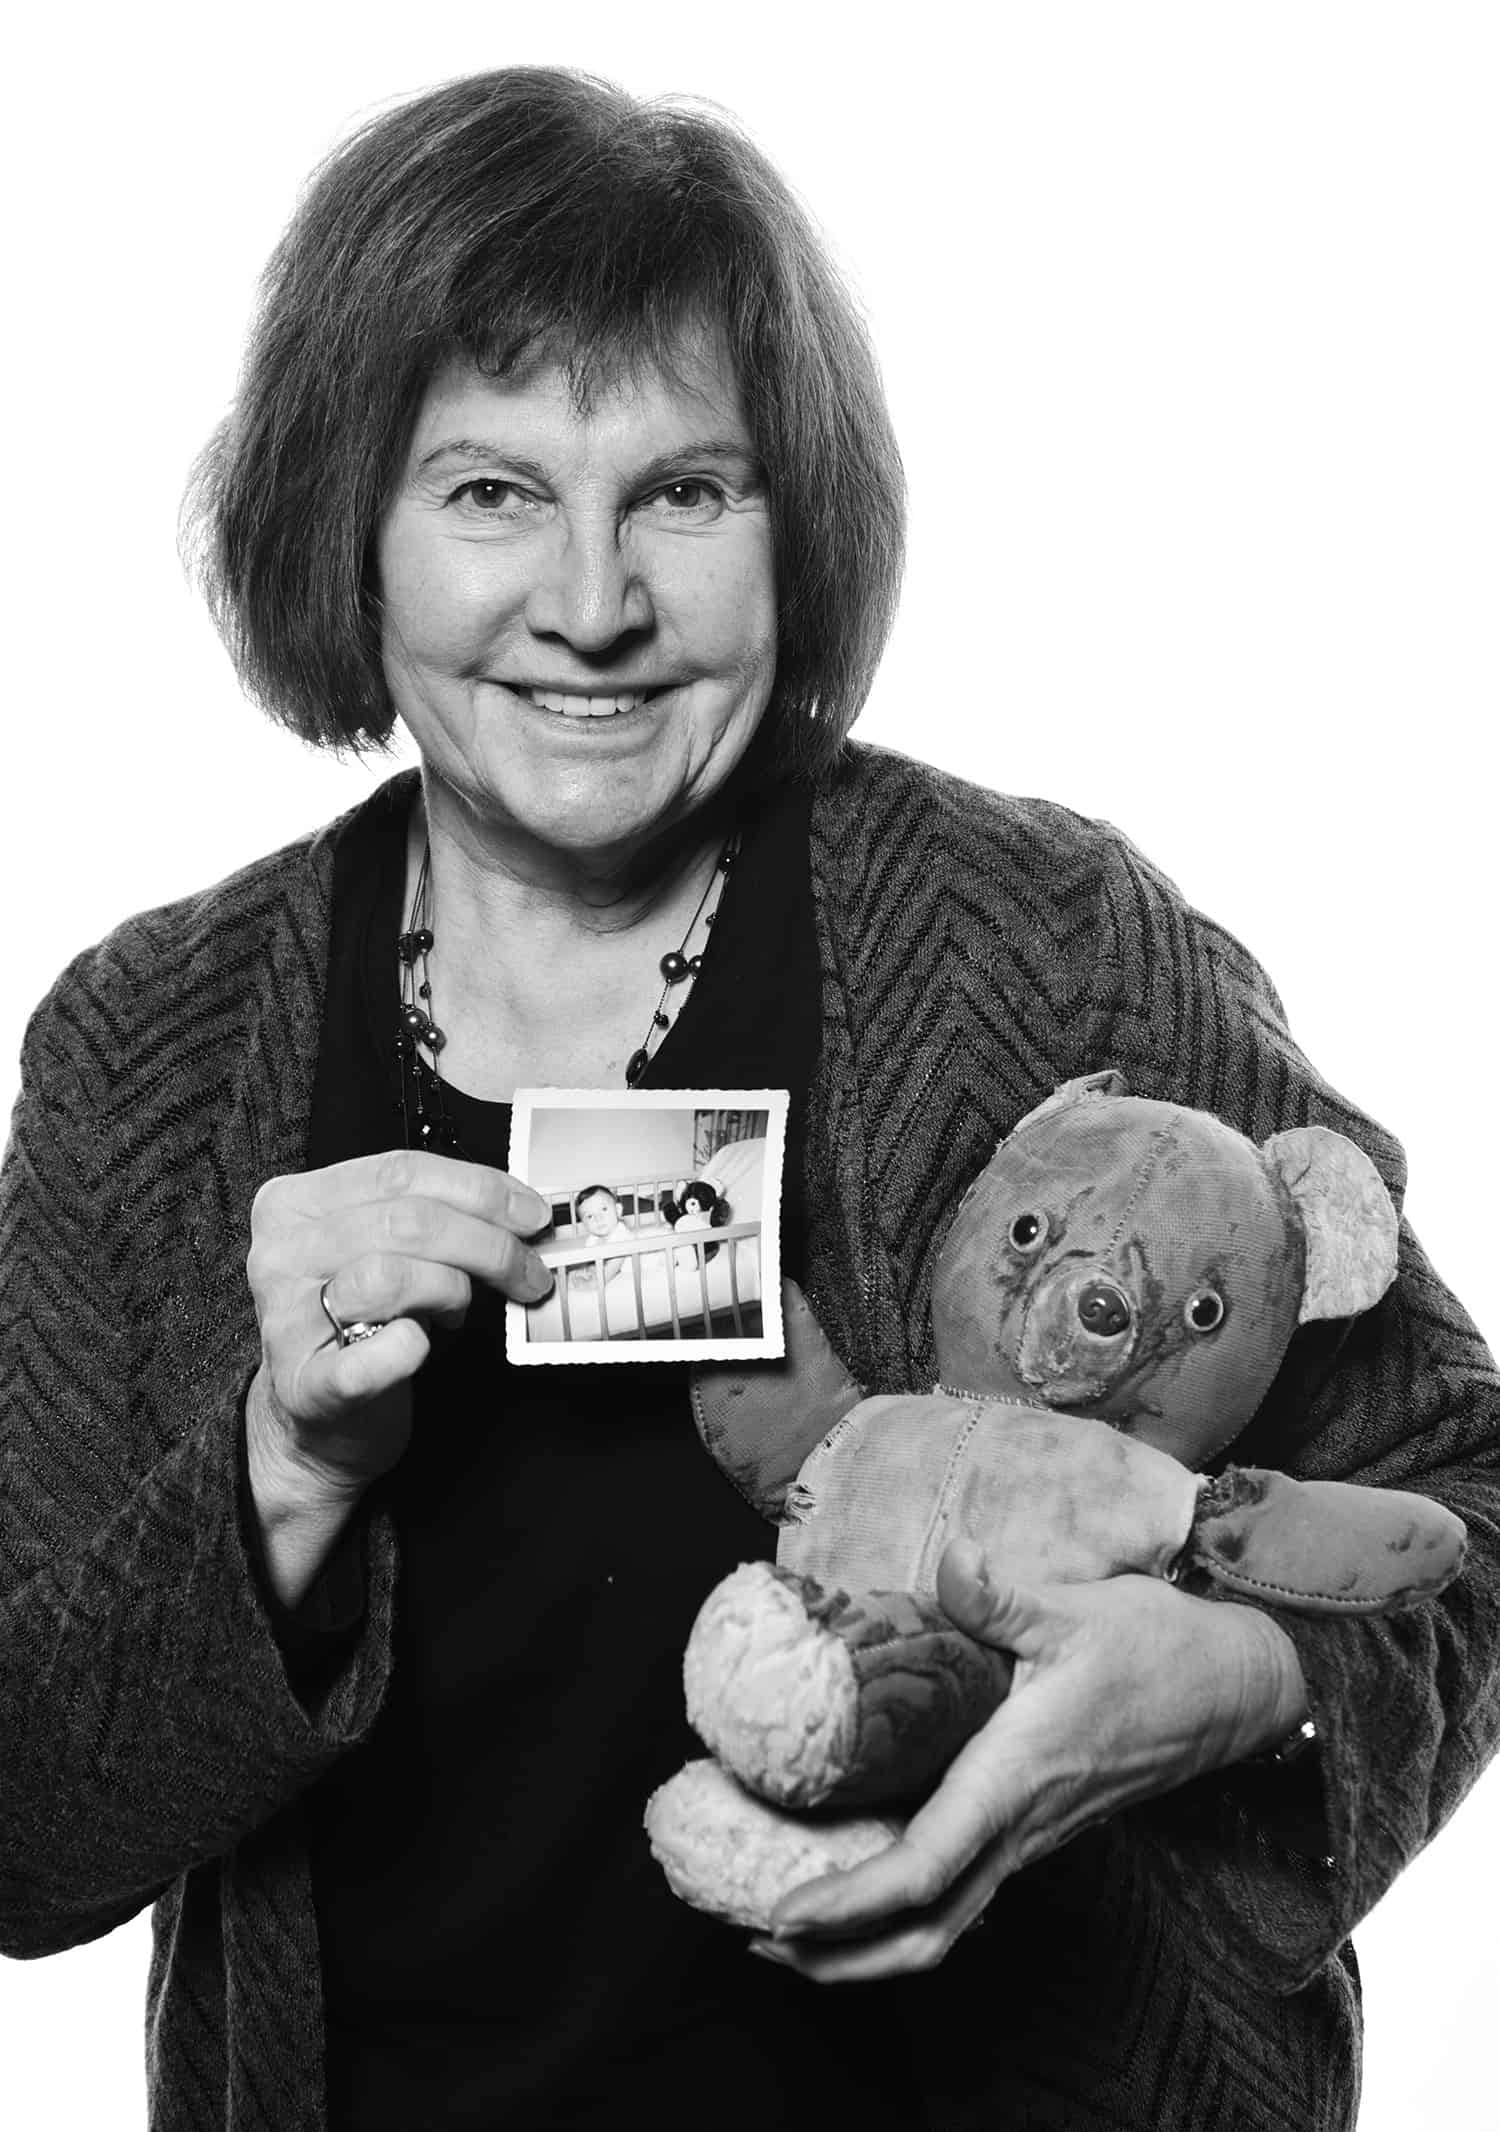 ONE by ONE Community Portrait Putnam Susan McPeters teddy bear 5